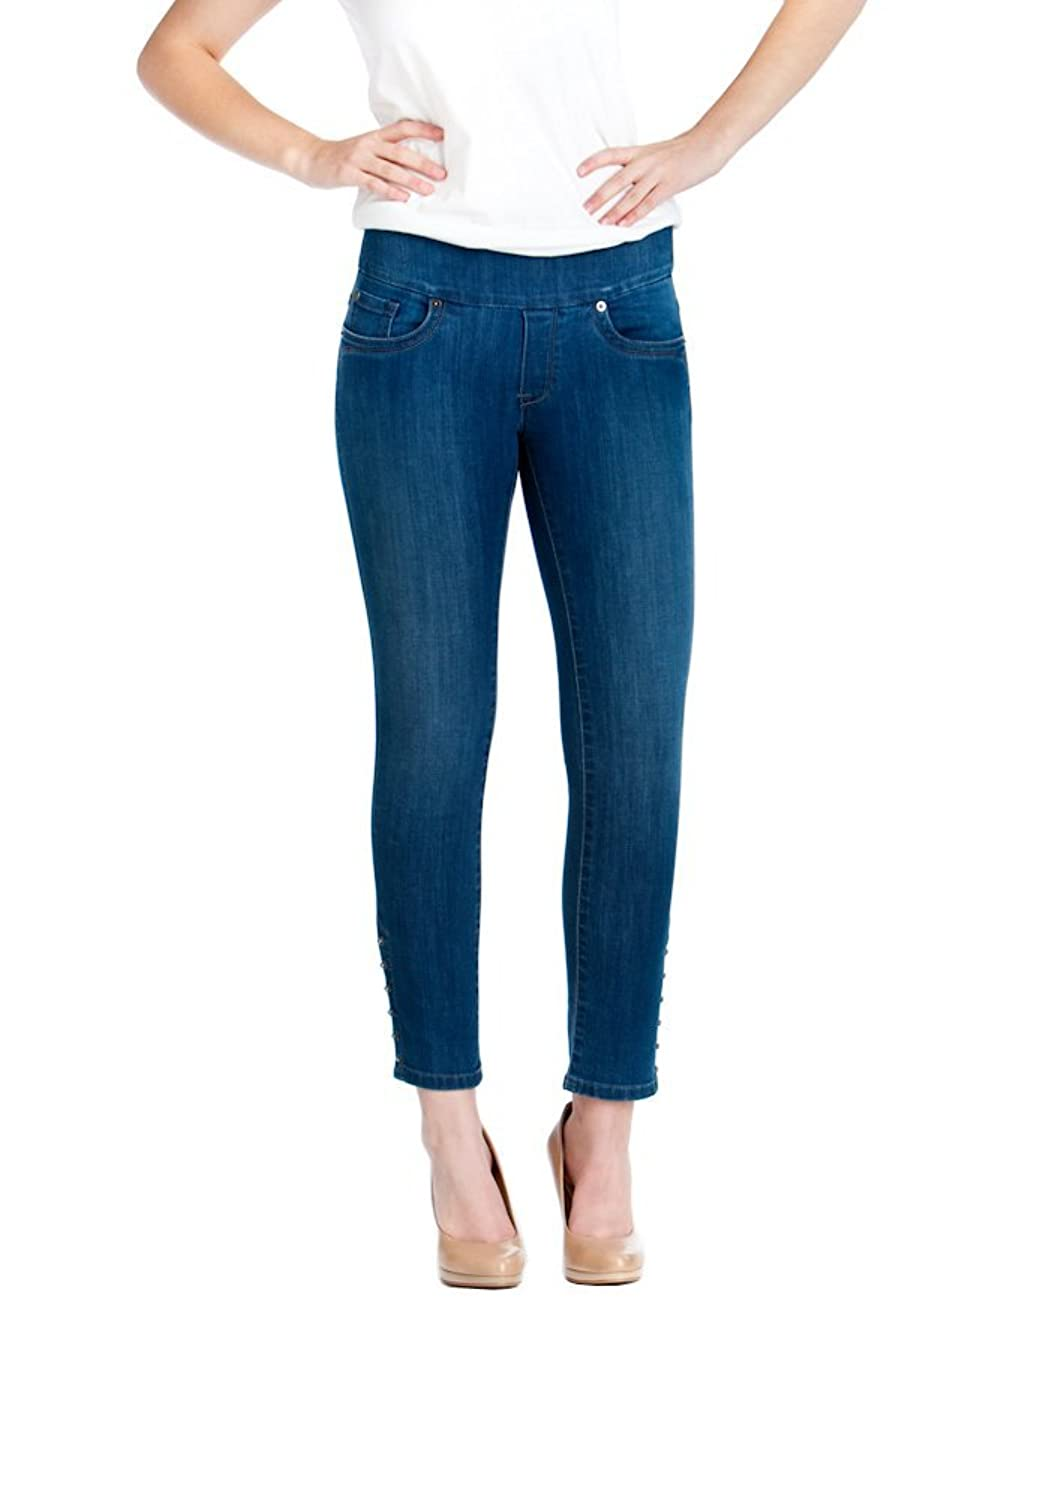 Bluberry Denim Women's Crop Jeans